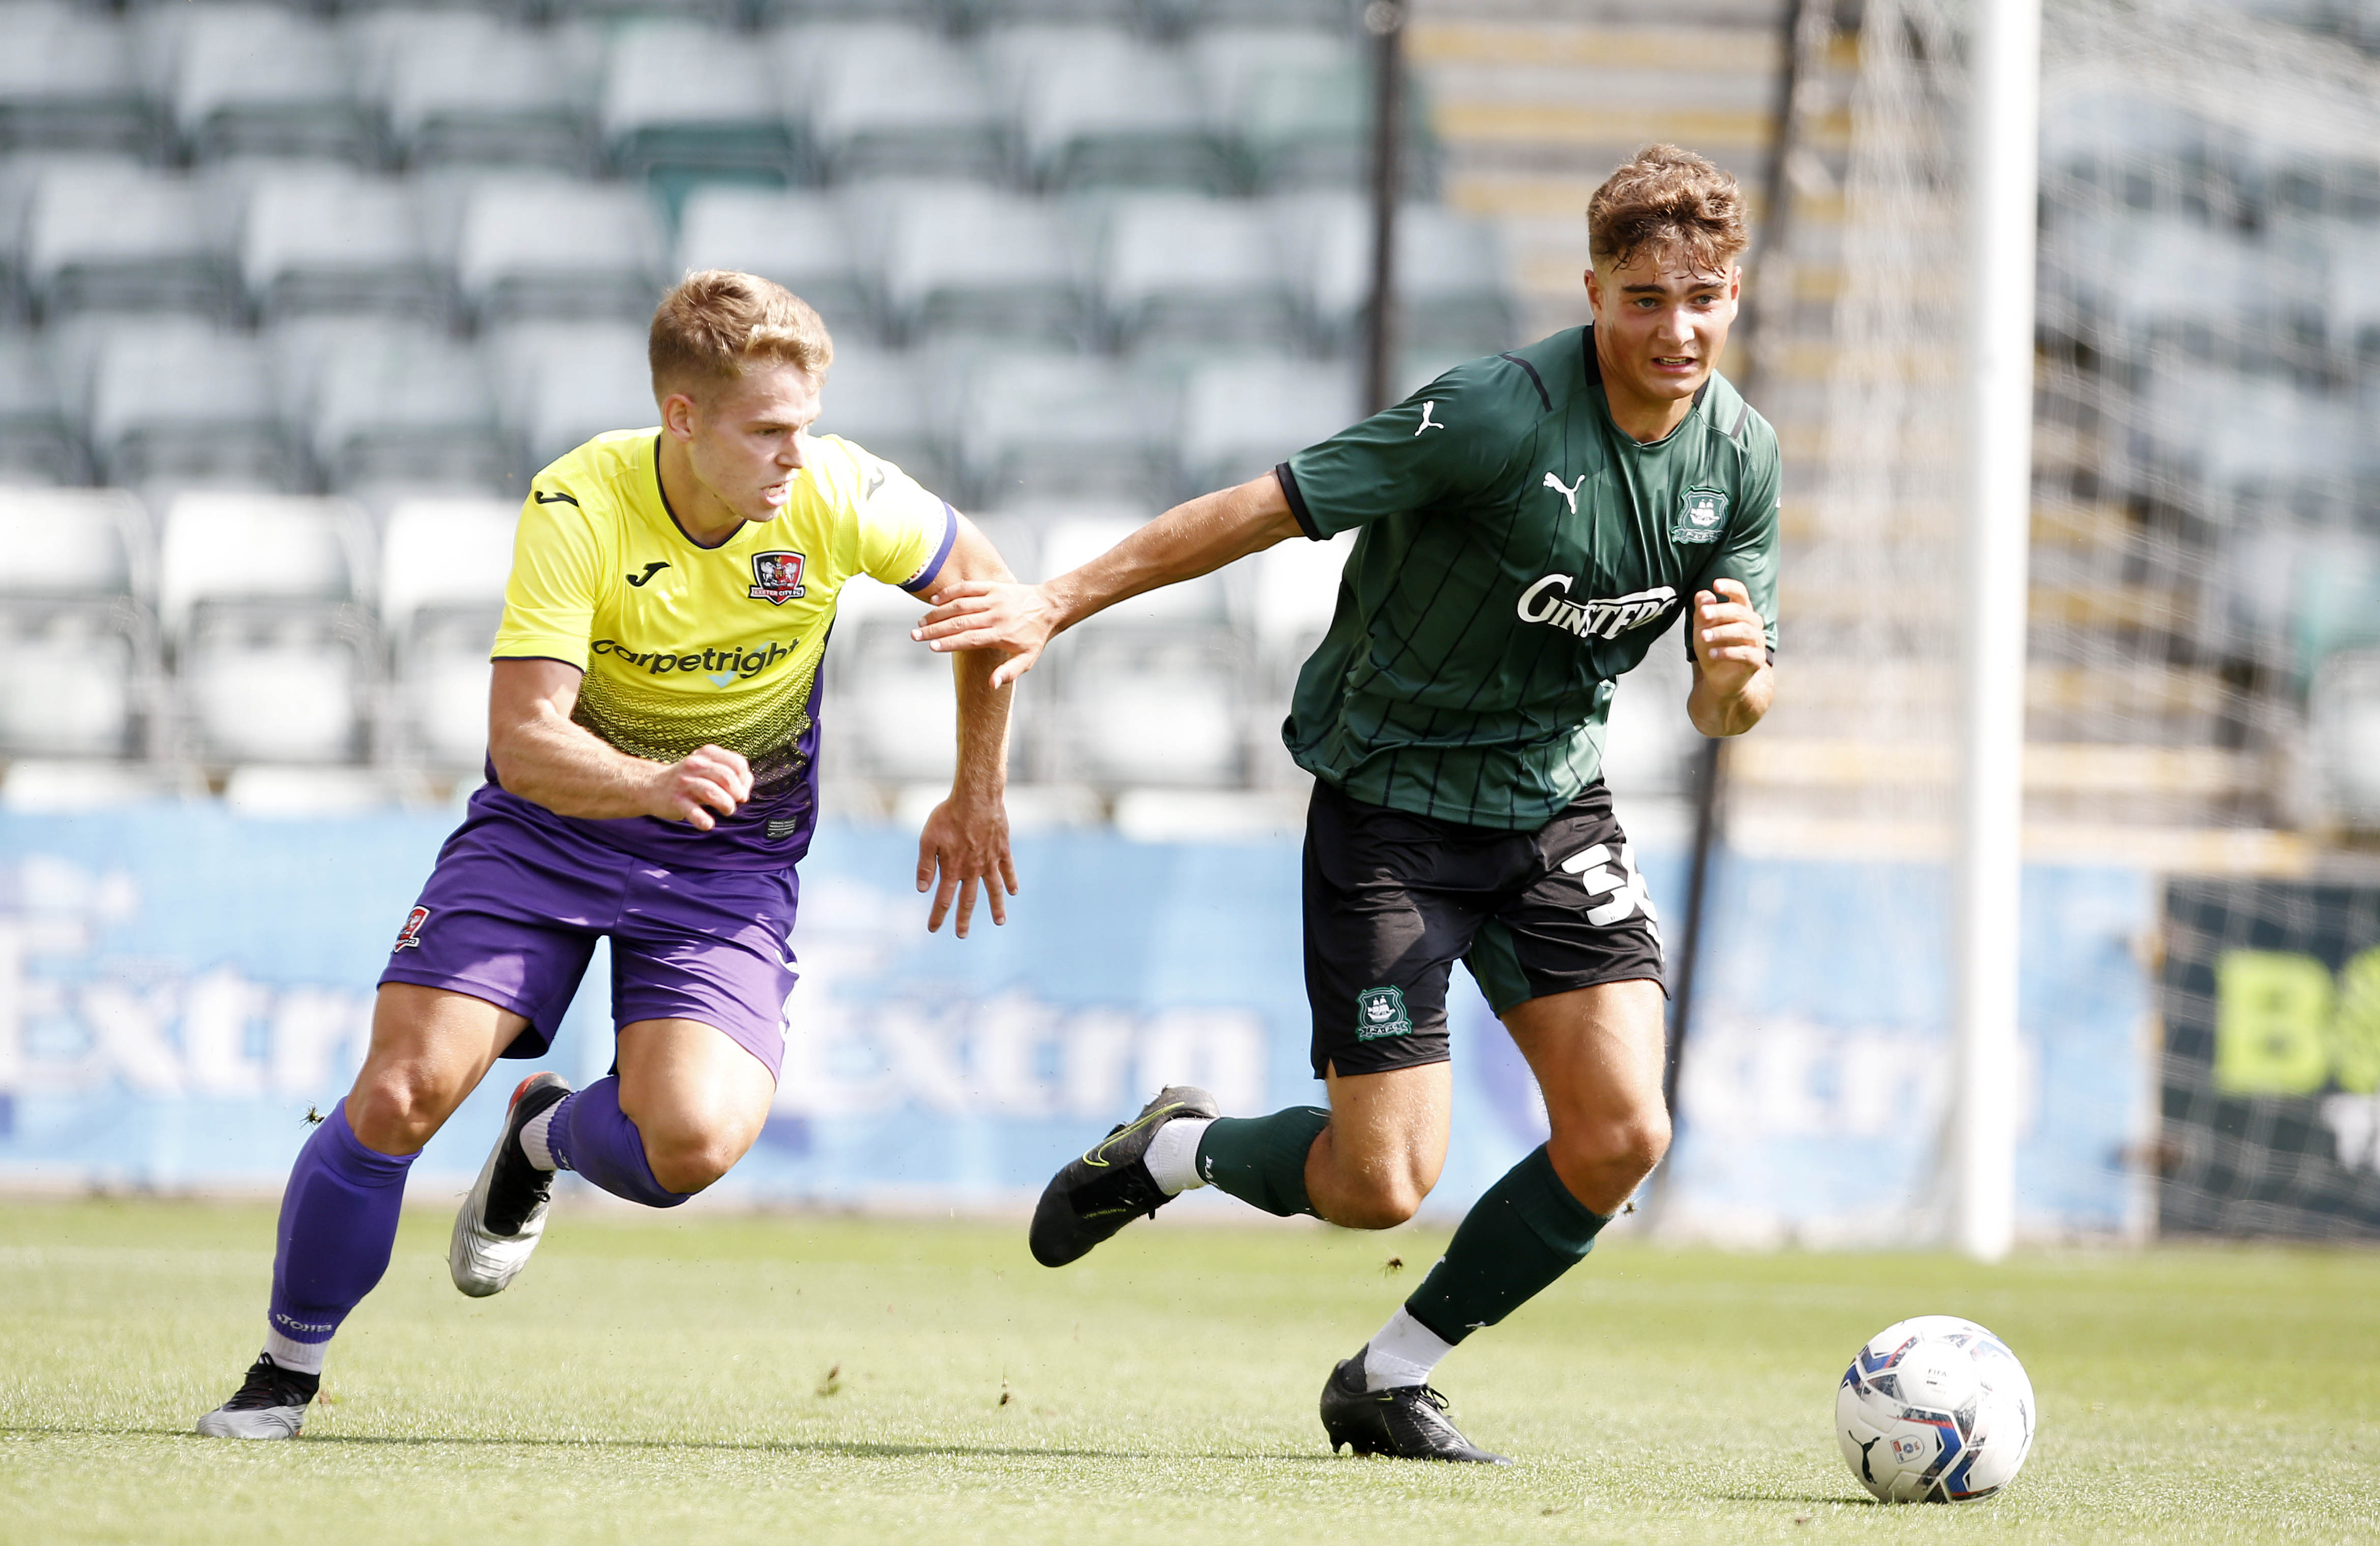 Finley Craske comes away with the ball against Exeter City Under 23s